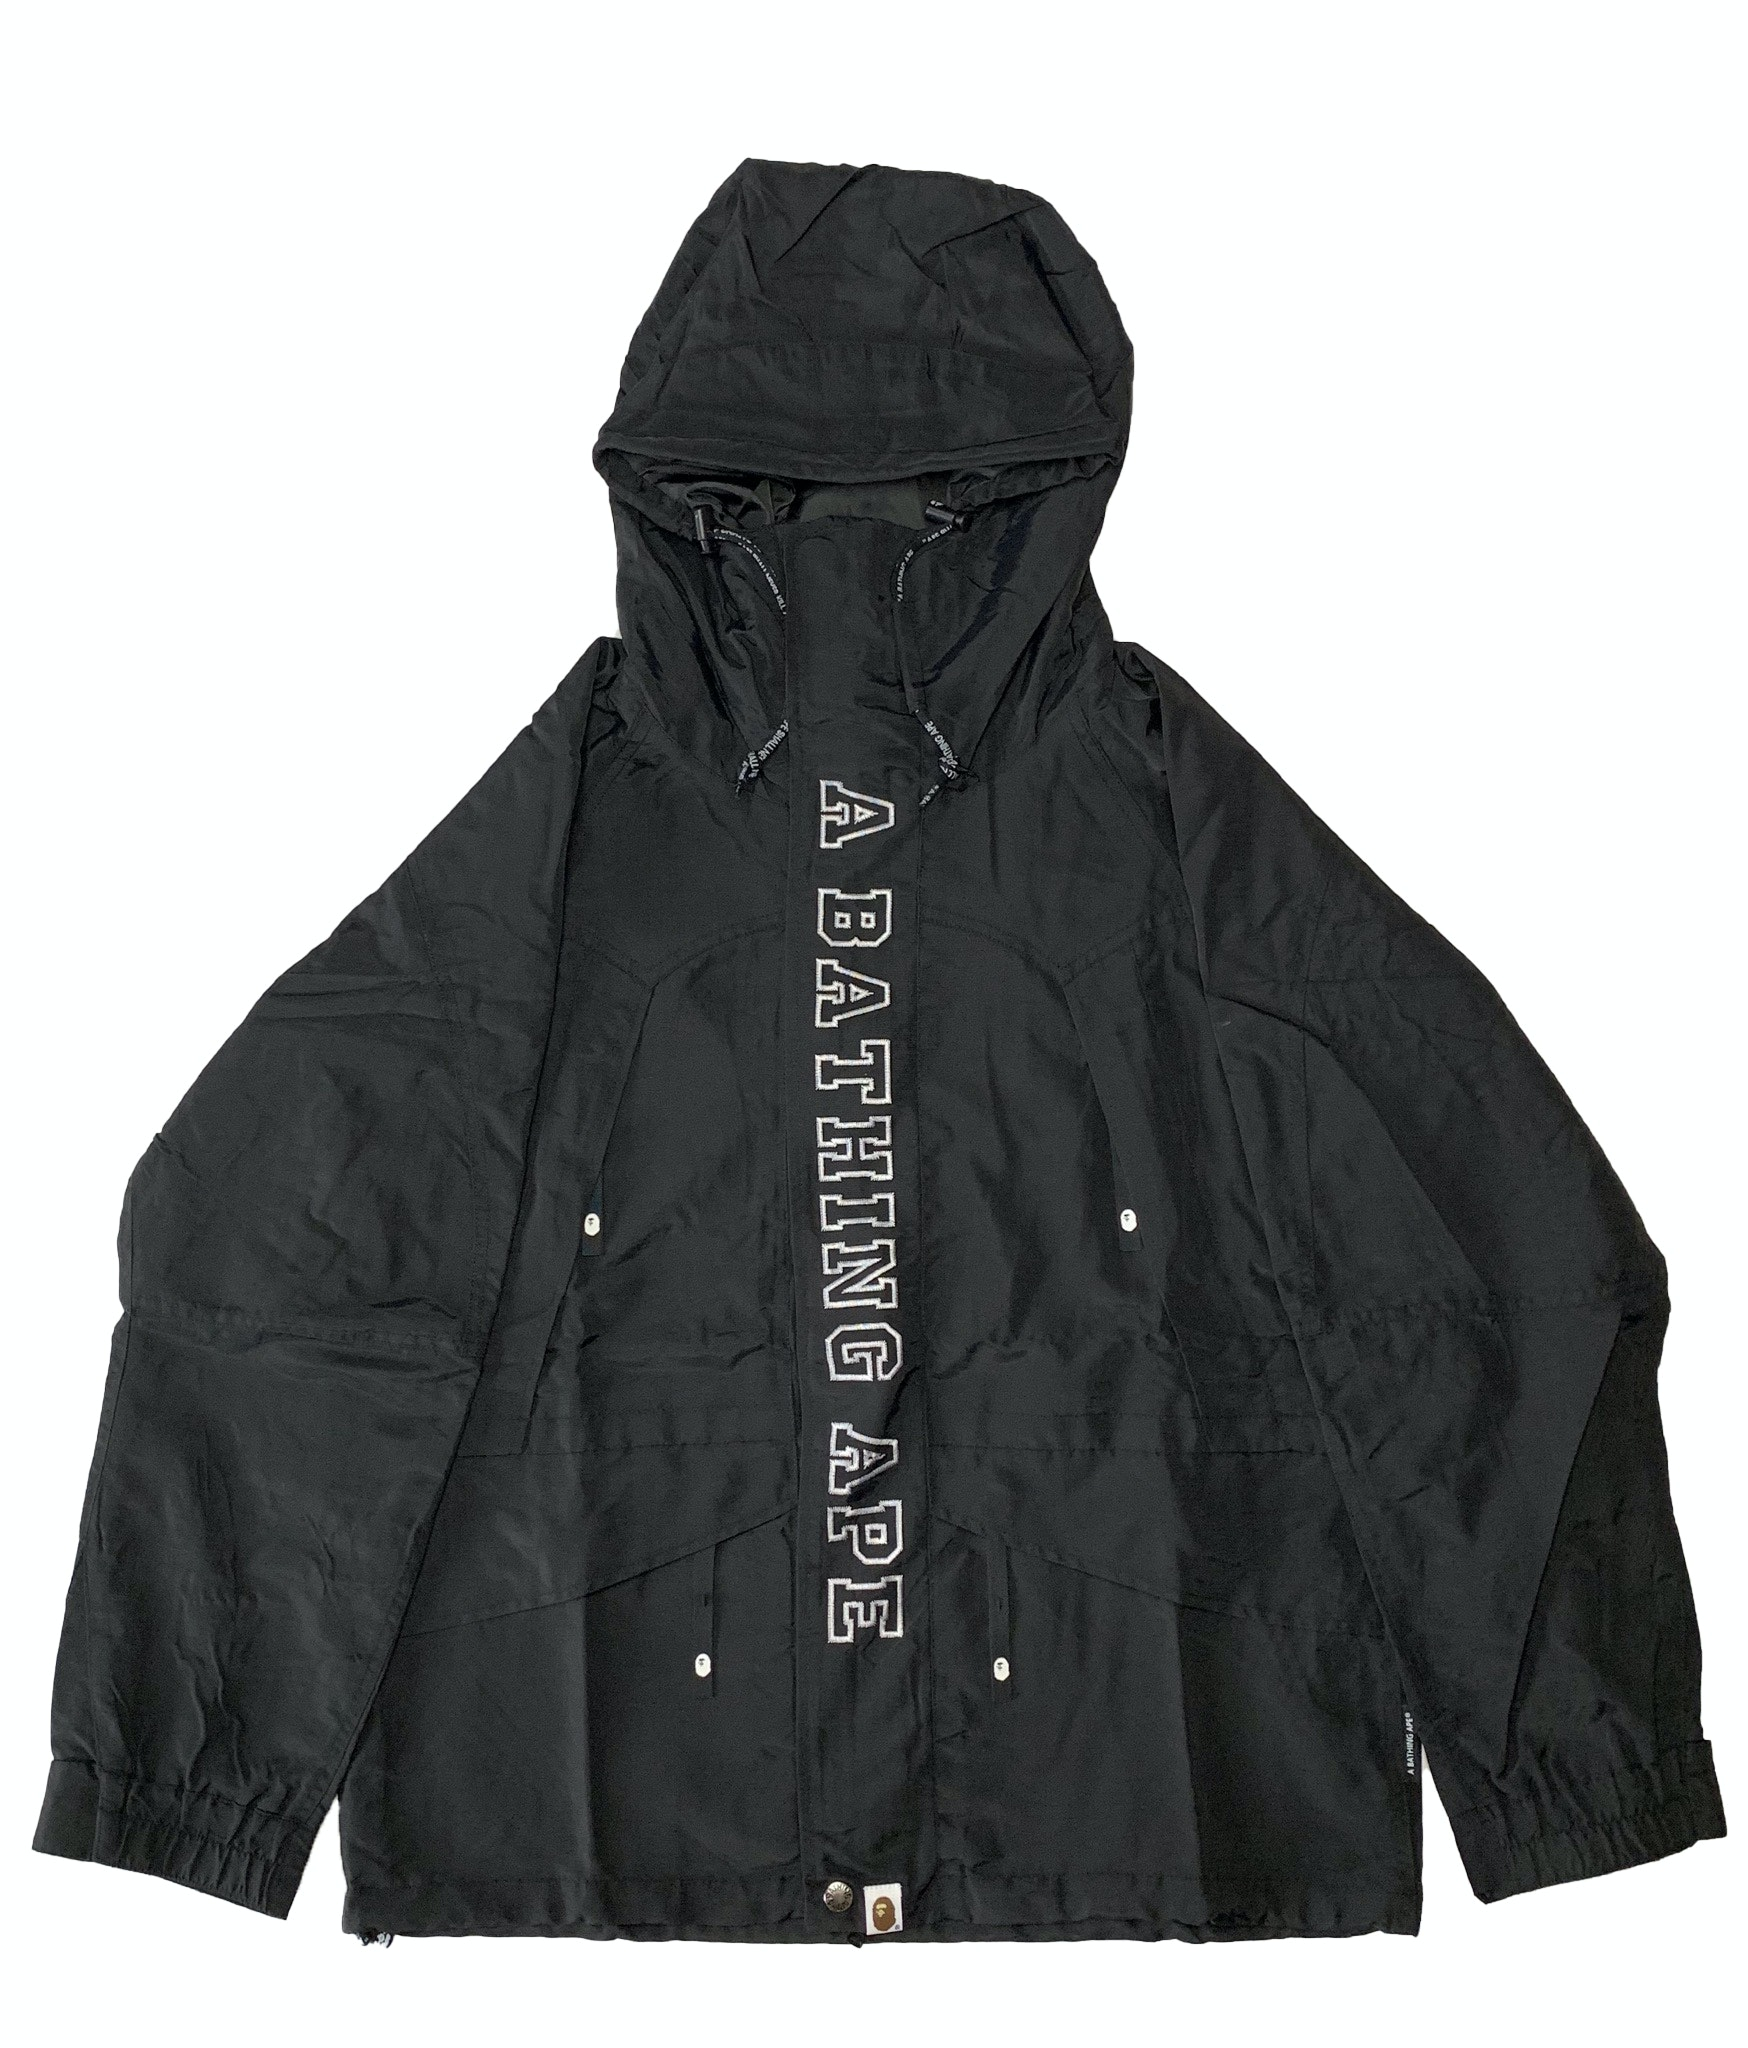 BAPE Happy New Year Snowboard Jacket Black